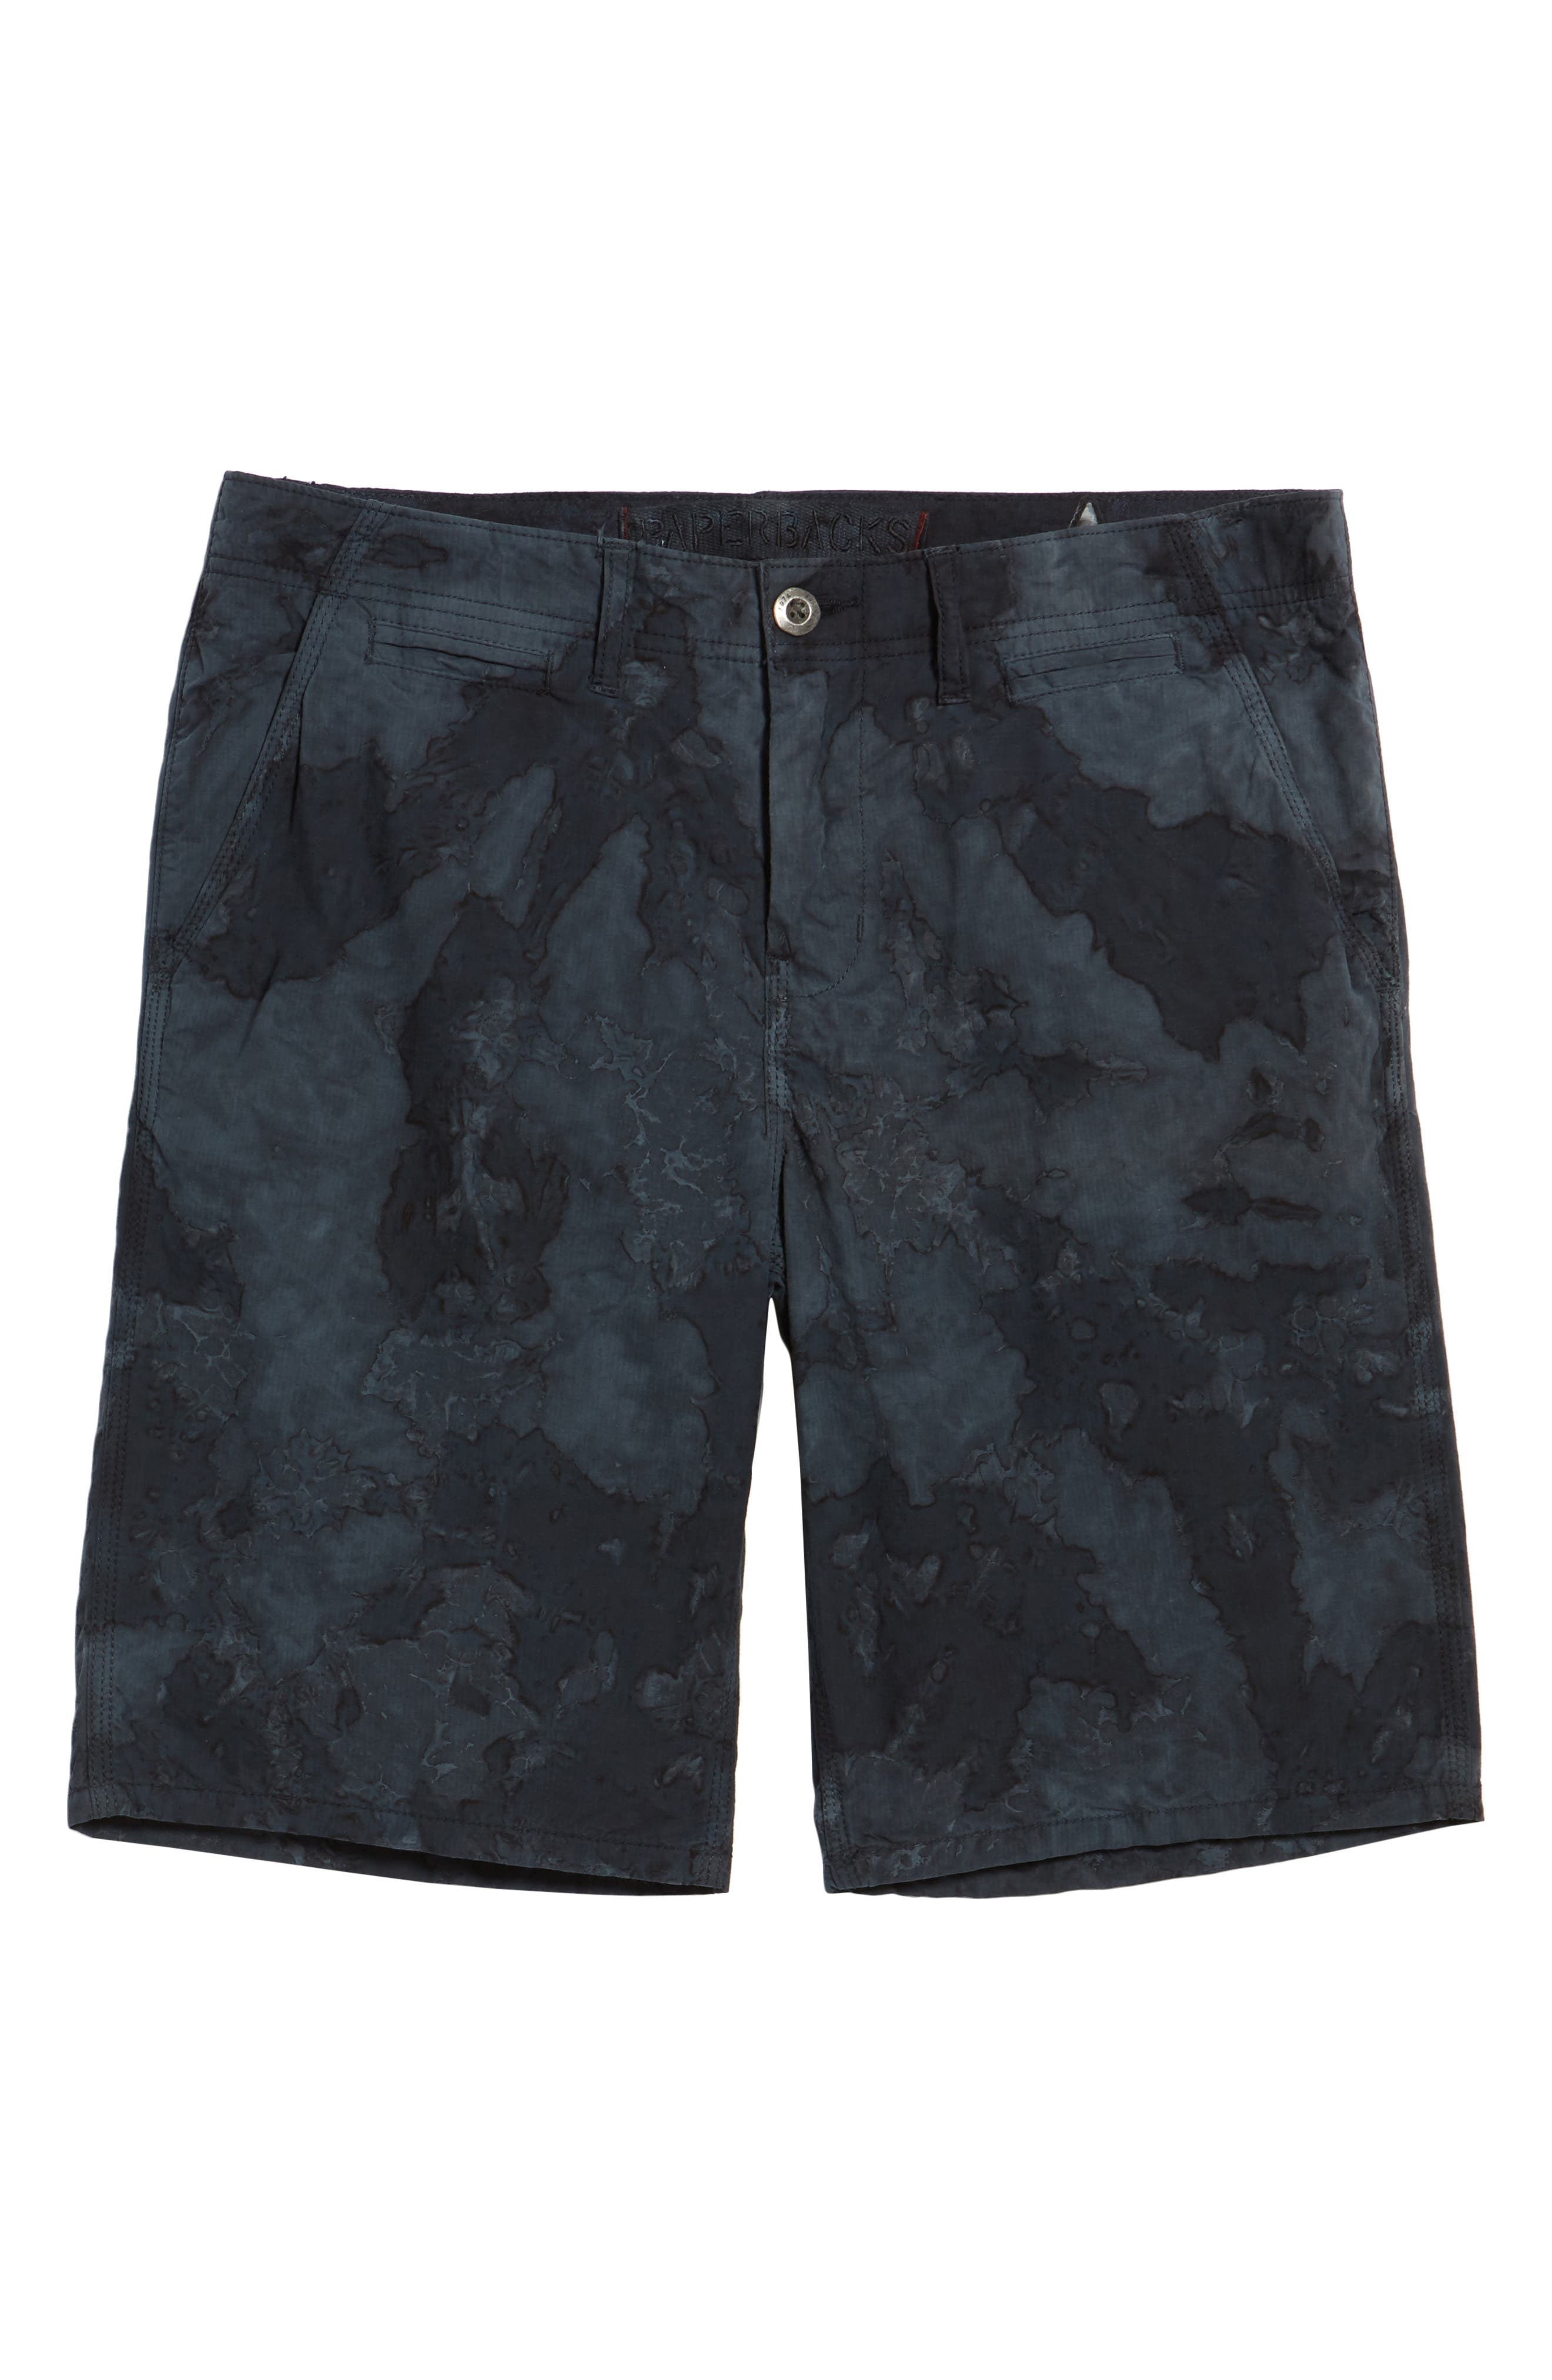 'Napa' Chino Shorts,                             Alternate thumbnail 71, color,